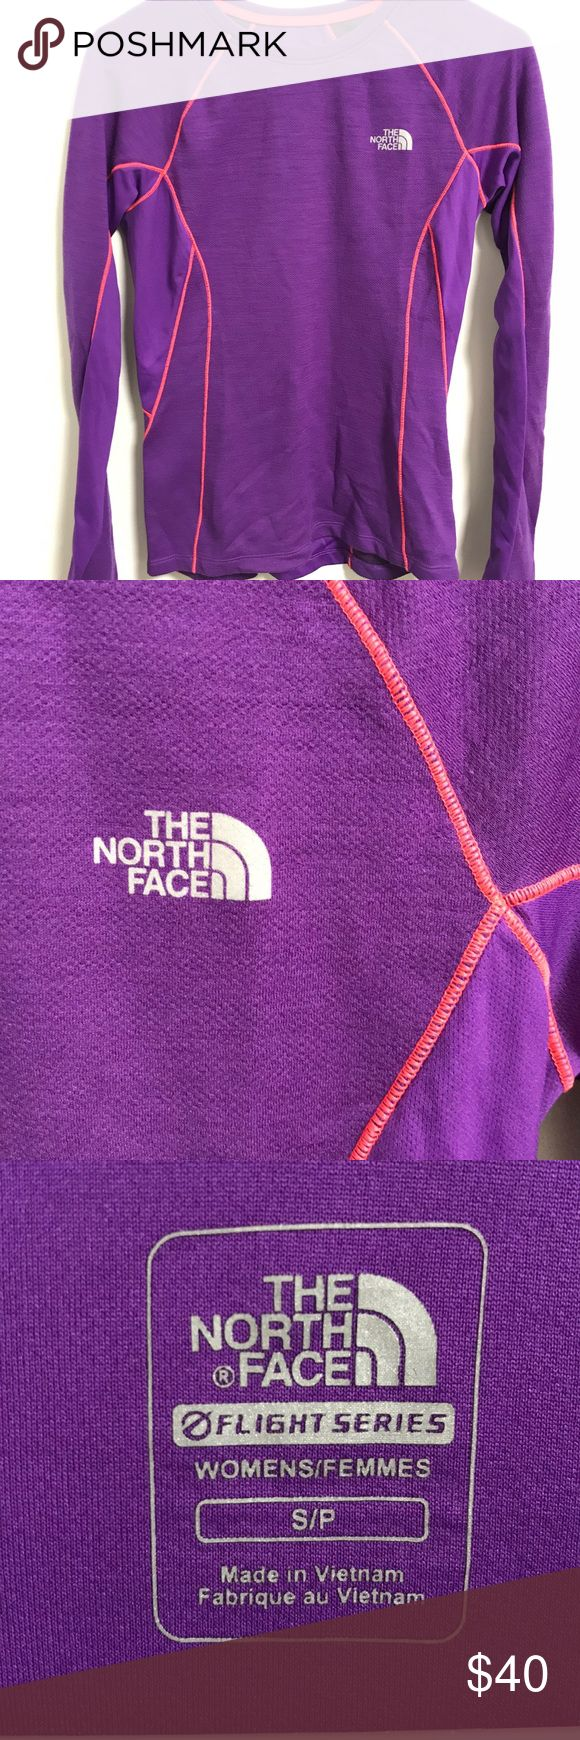 North Face Flight Series Purple Long Sleeve Top The North Face Flight Series purple long sleeve exercise top. Pink seems. Worn rarely. Size S. Light weight, great fit. The North Face Tops Tees - Long Sleeve